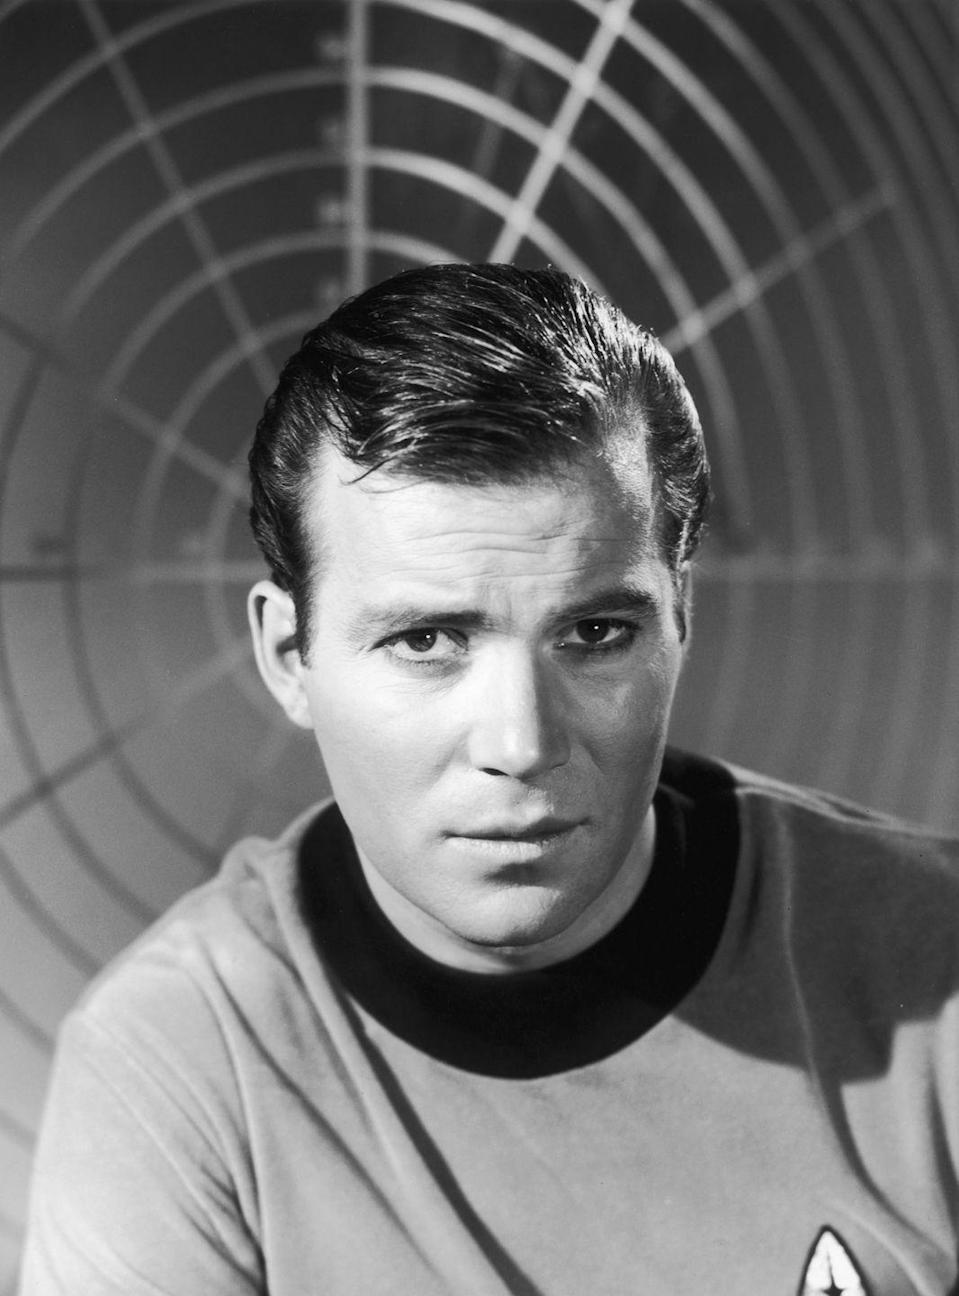 <p>Though the original <em>Star Trek </em>garnered a devoted fanbase, the show pulled in modest reviews and was cancelled after three seasons, leaving Shatner with few job prospects.</p>